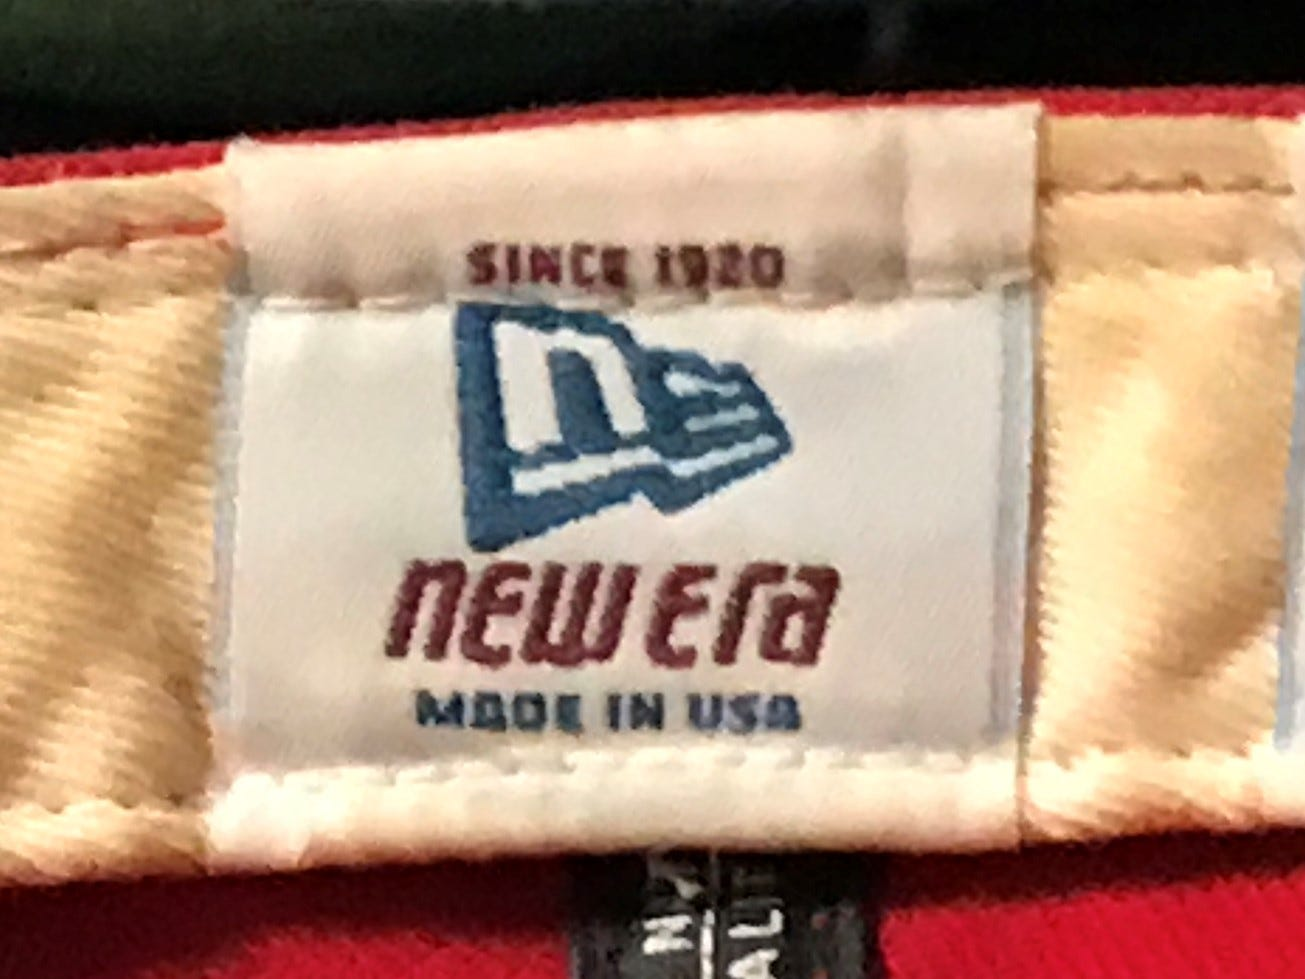 Eugene McDonald's Cincinnati Reds baseball cap was made by New Era, a company in business since 1920 -- the same year McDonald was born.